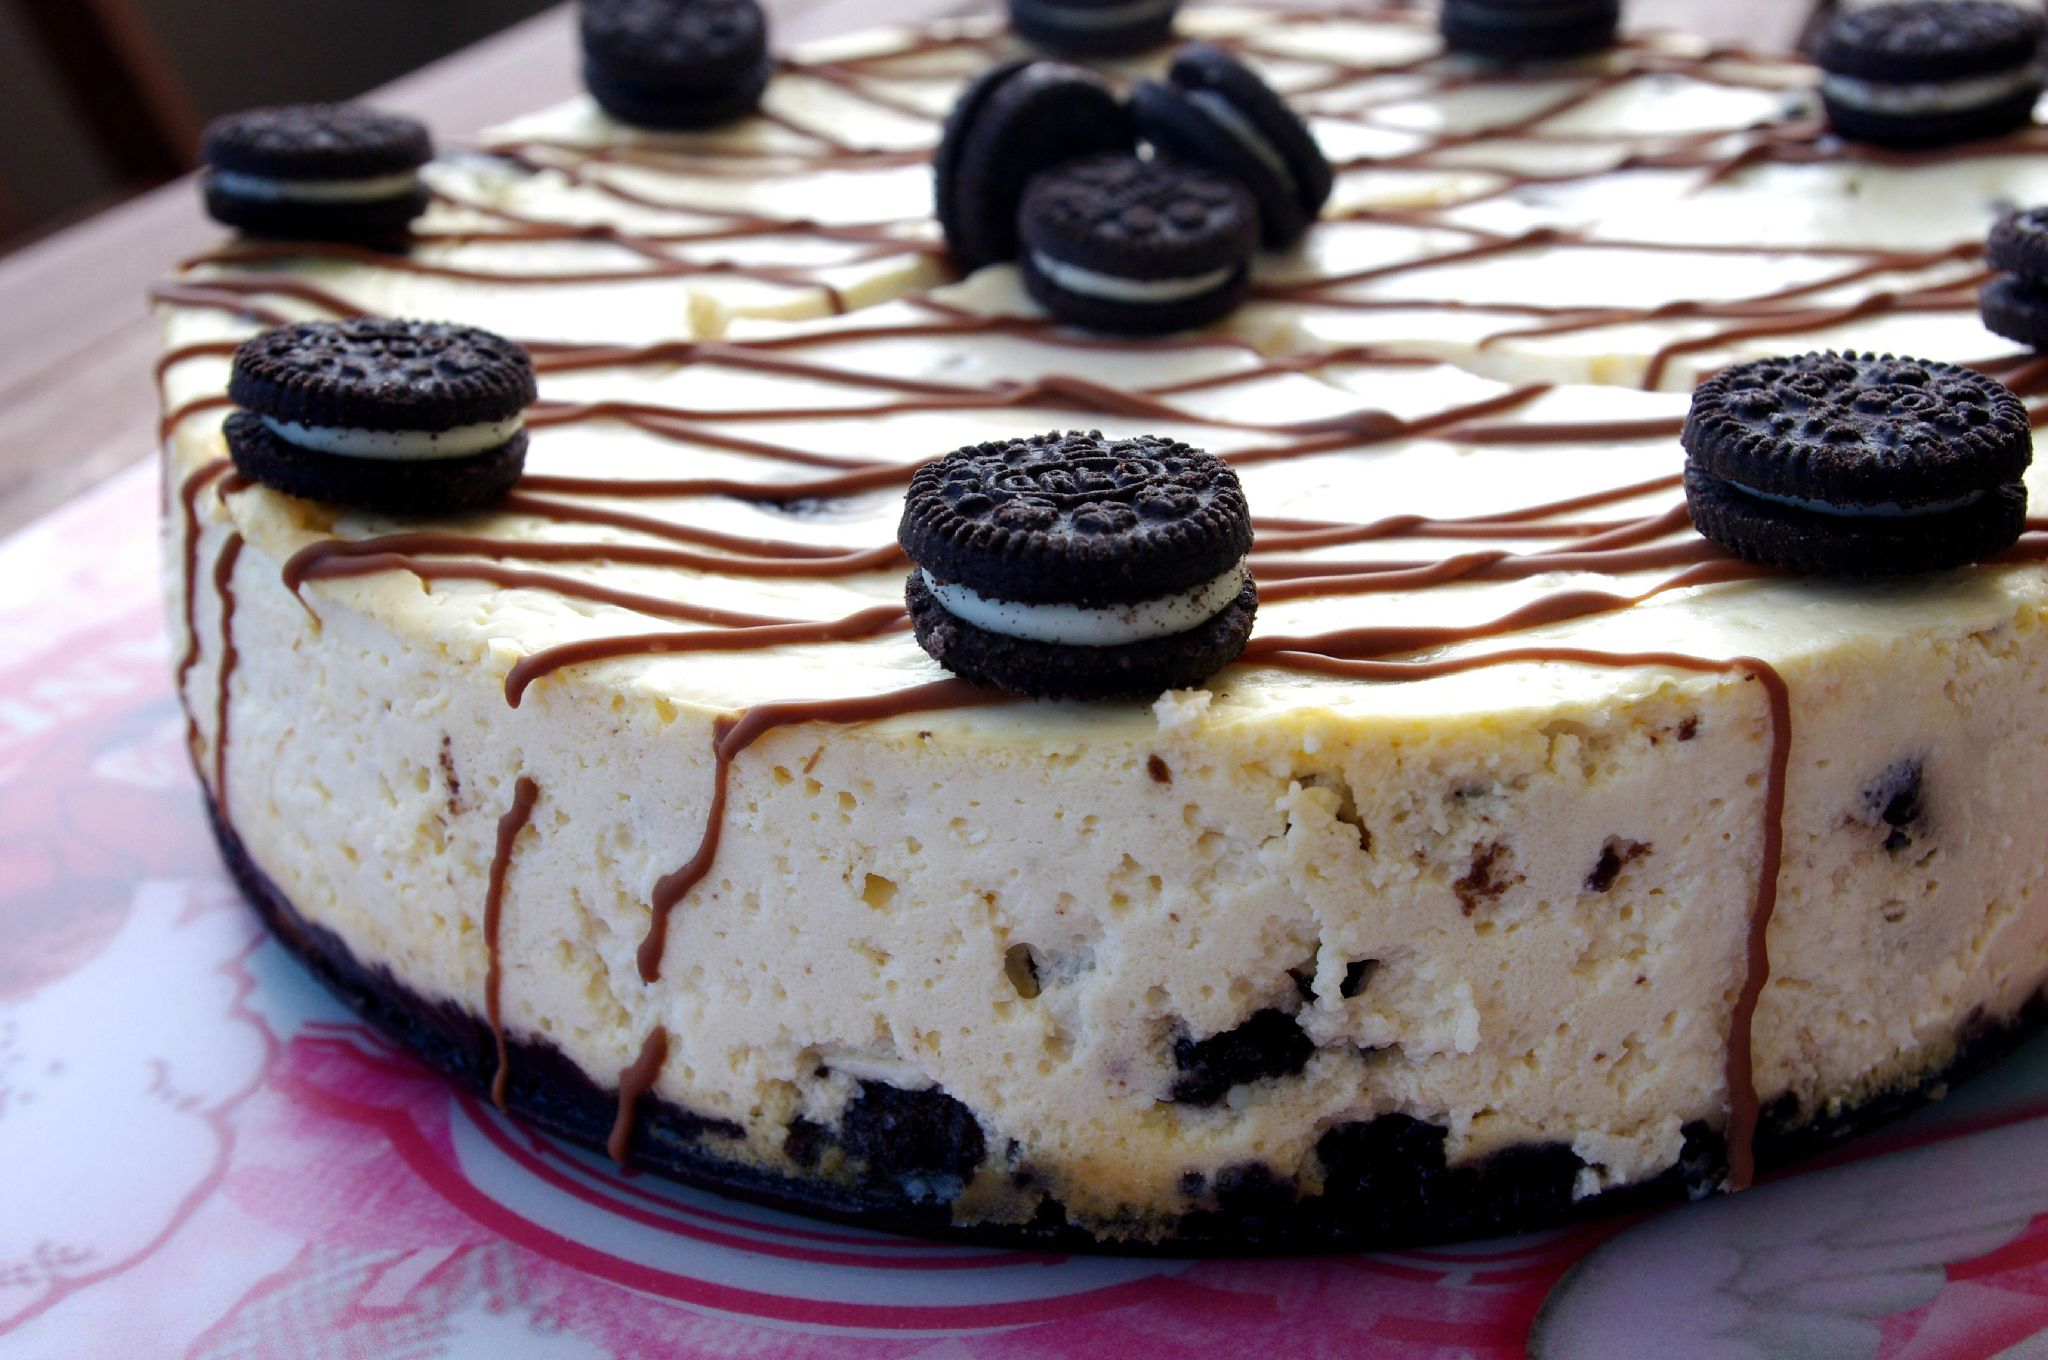 cheesecake oreo philadelphia cake ideas and designs. Black Bedroom Furniture Sets. Home Design Ideas